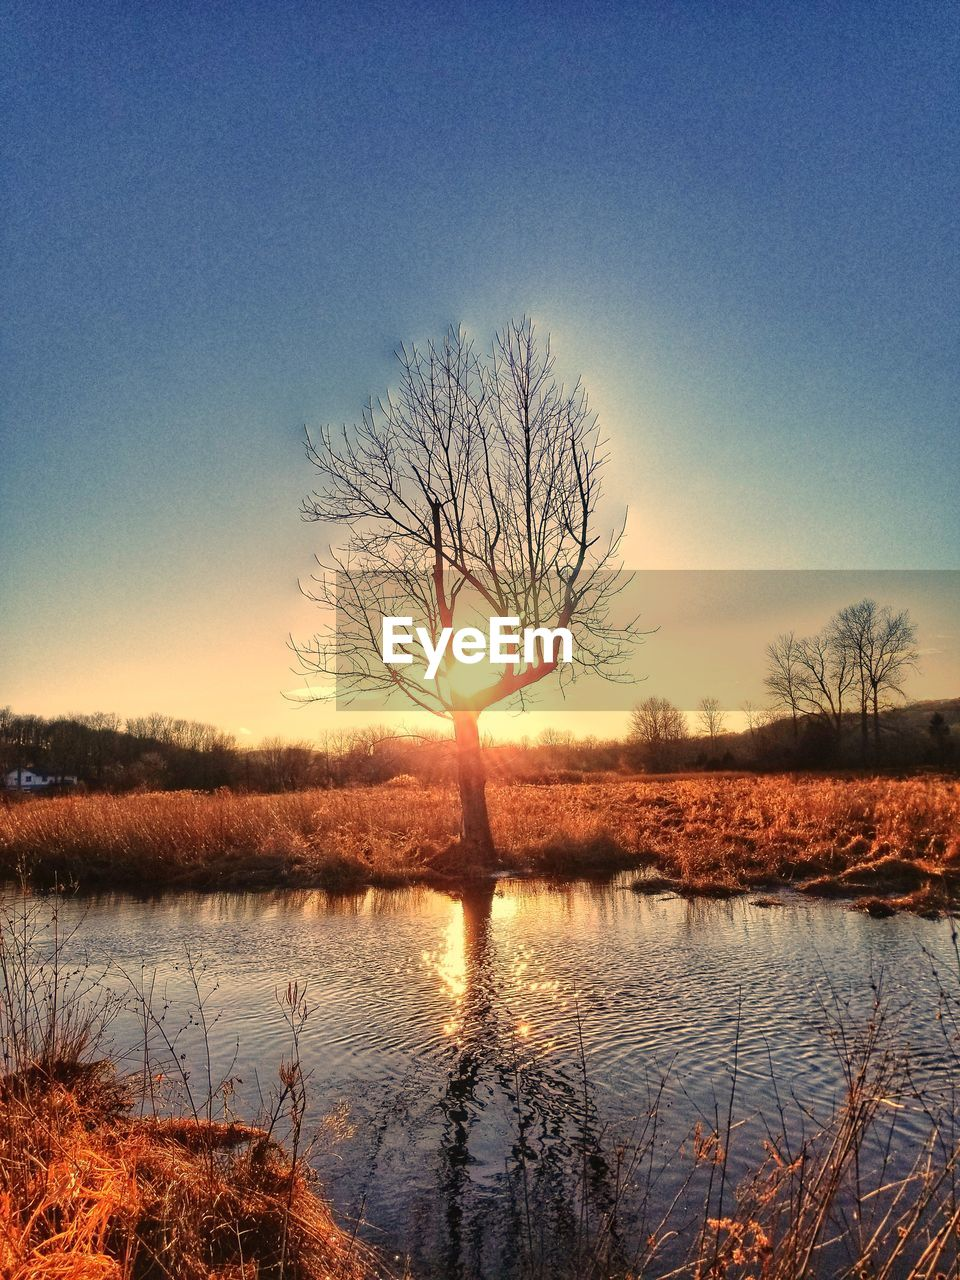 tranquility, tranquil scene, bare tree, tree, beauty in nature, sunset, nature, lone, majestic, tree trunk, scenics, lake, non-urban scene, remote, reflection, solitude, branch, outdoors, landscape, silhouette, clear sky, water, no people, sky, day